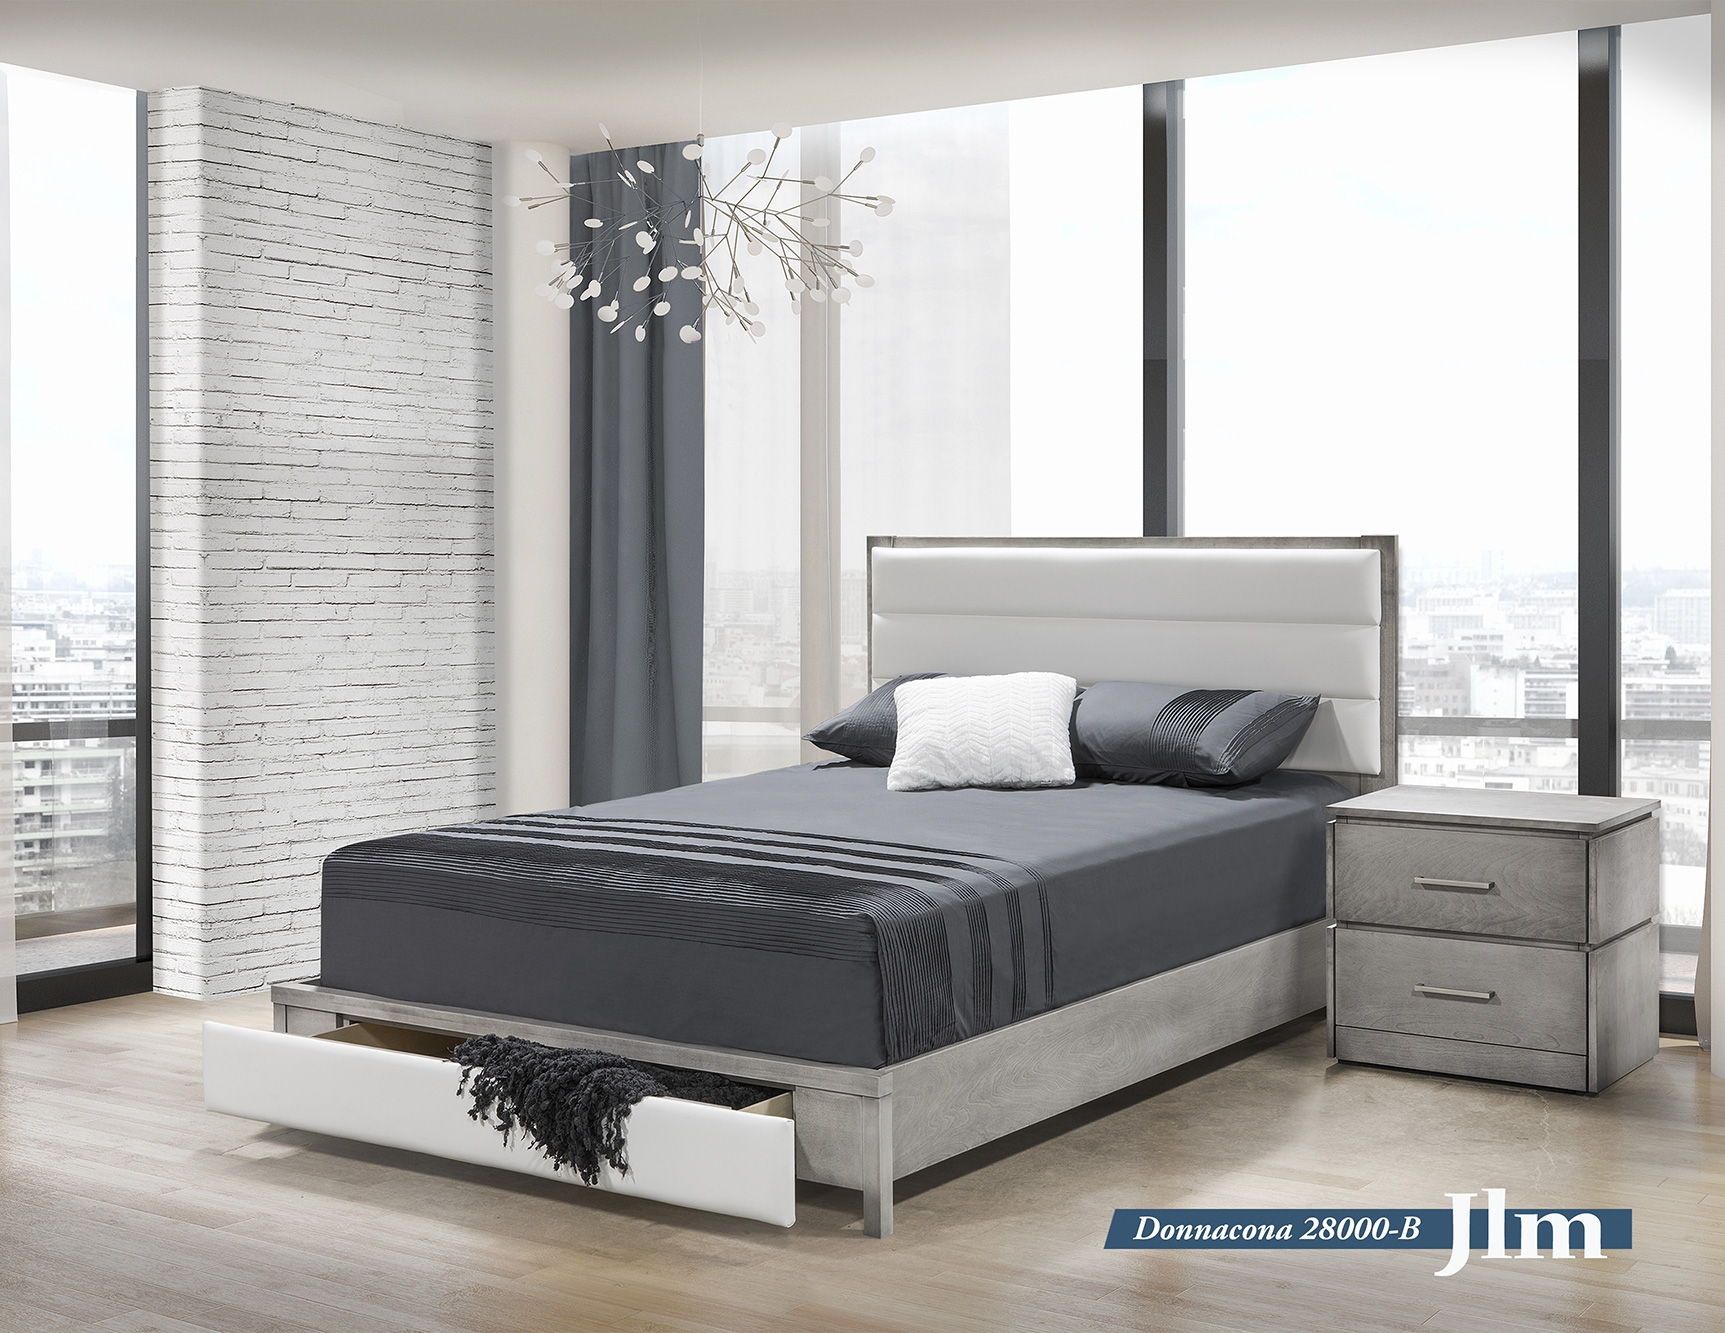 Meubles JLM Bedroom Furniture 2